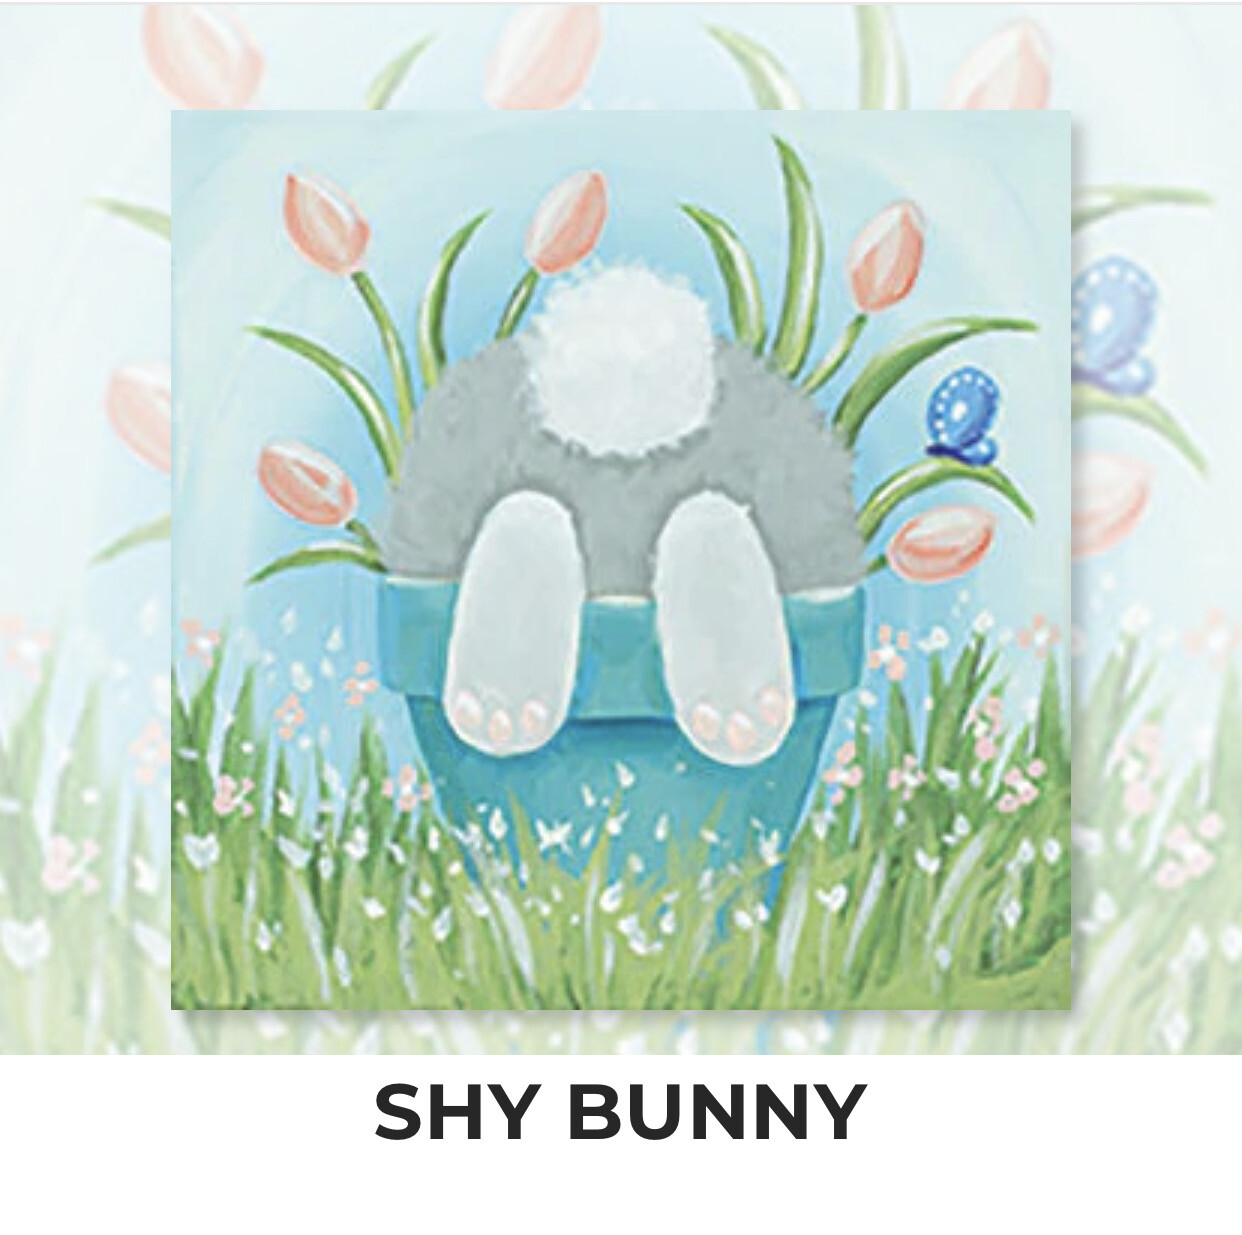 Shy Bunny KIDS Acrylic Paint On Canvas DIY Art Kit - 3 Week Special Order